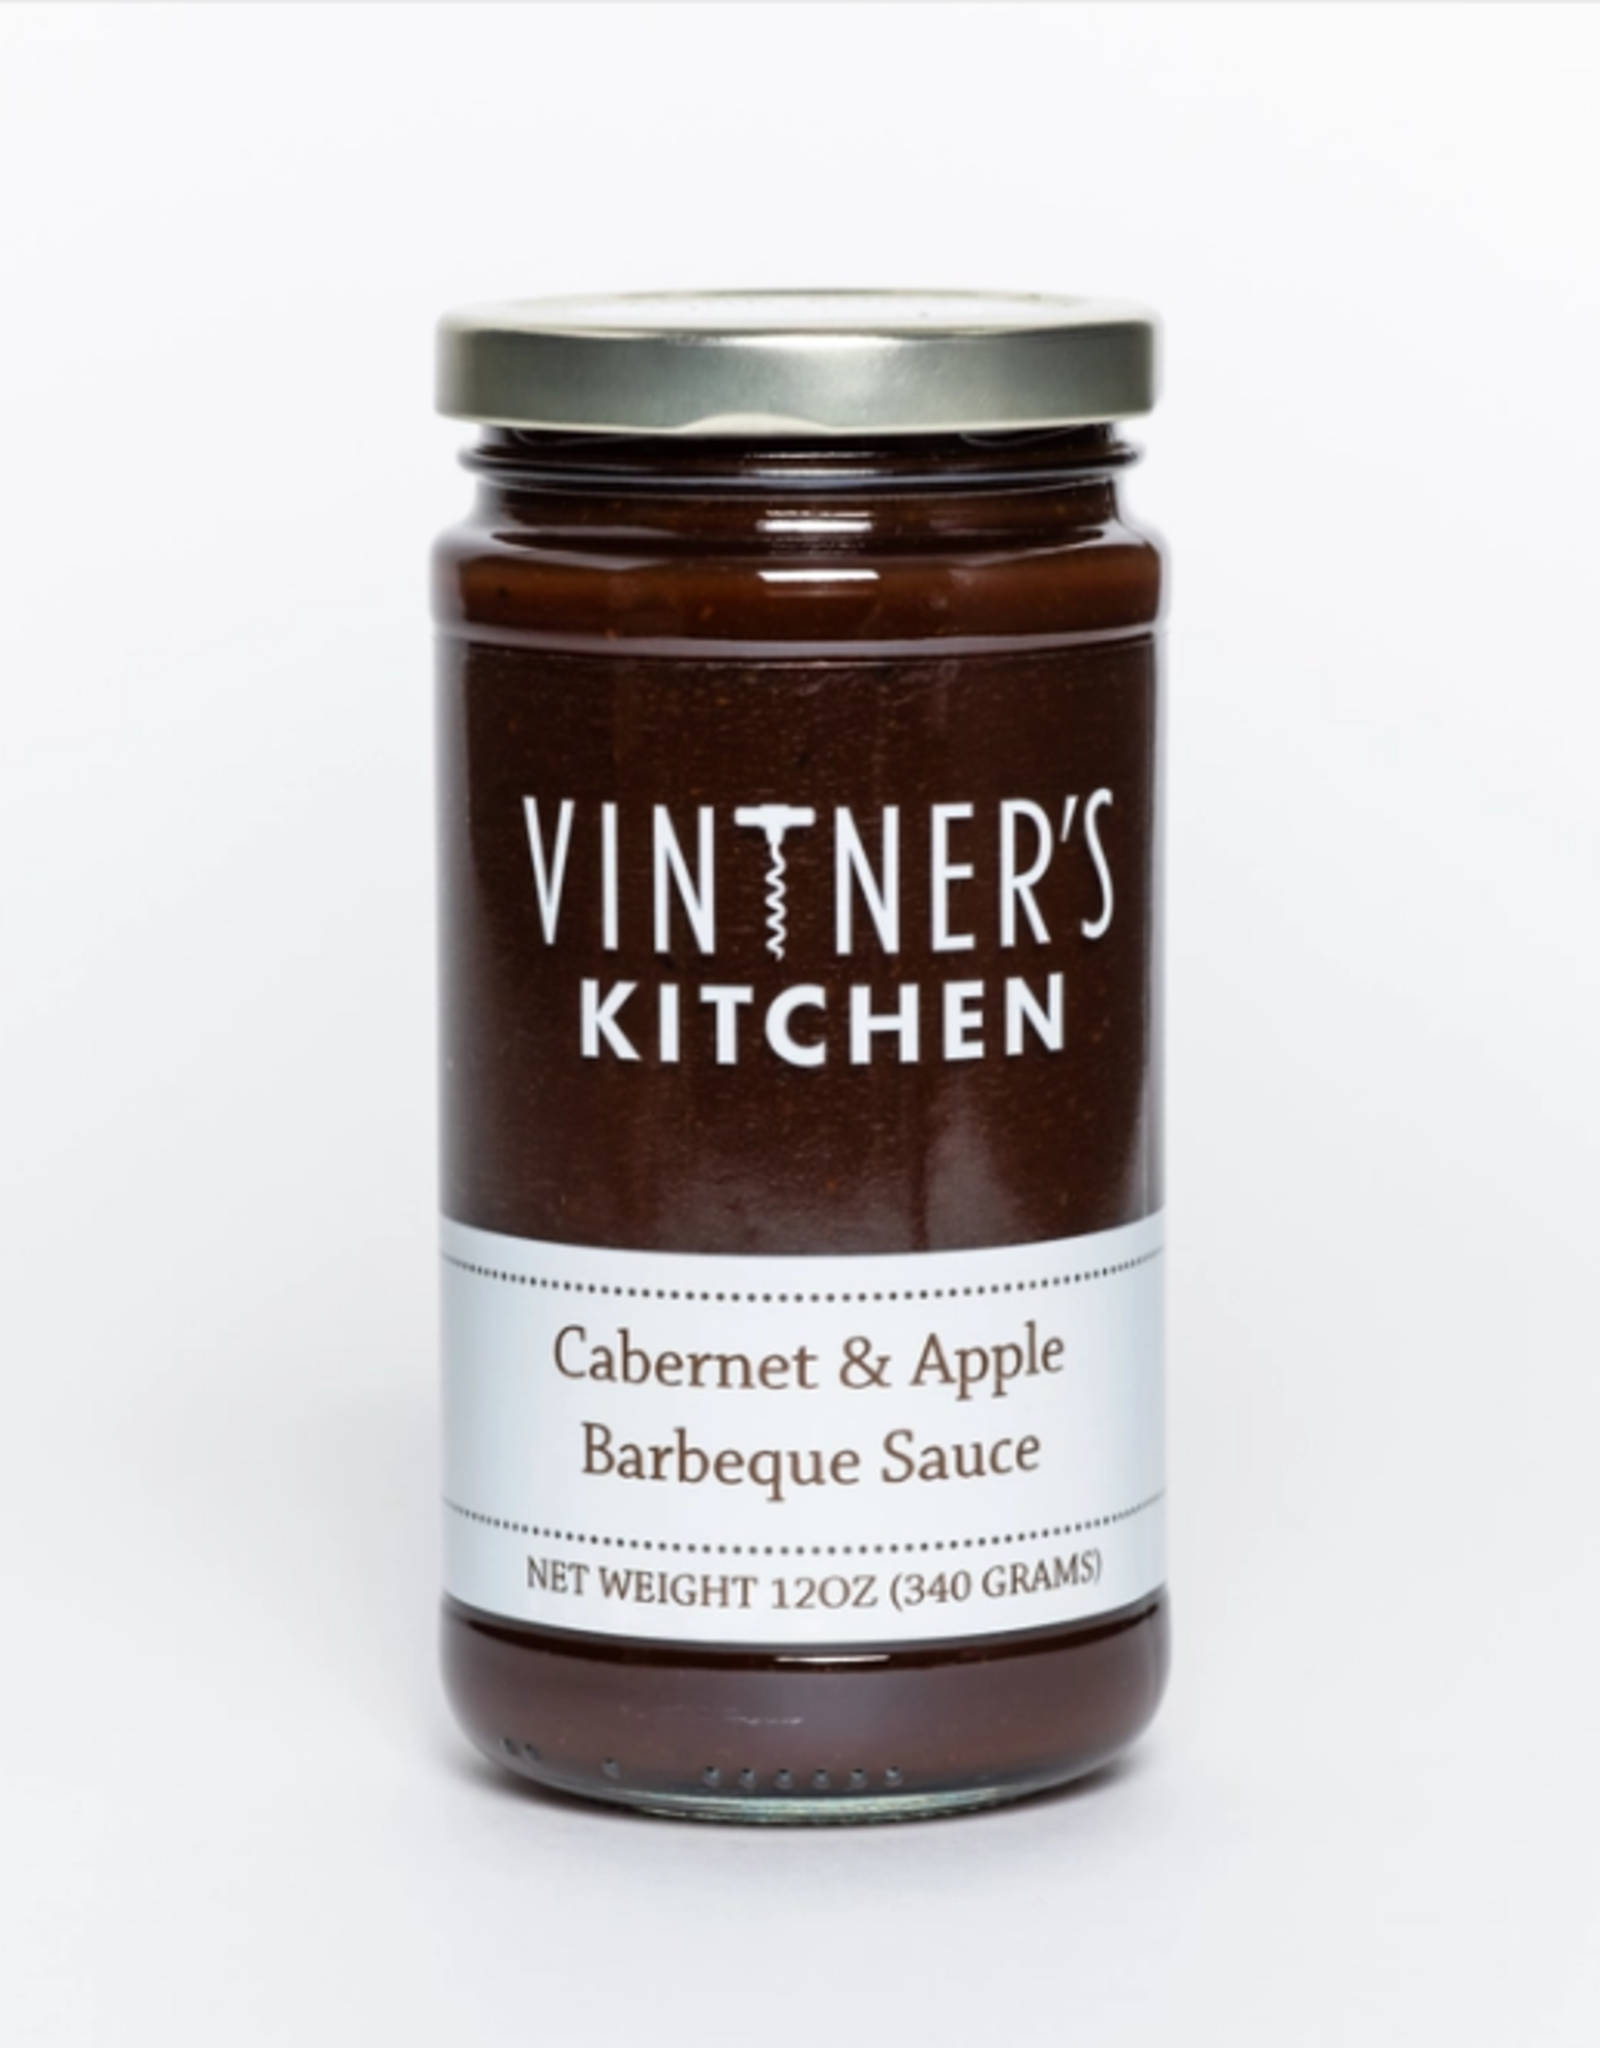 Vintner's Kitchen Cabernet & Apple BBQ Sauce